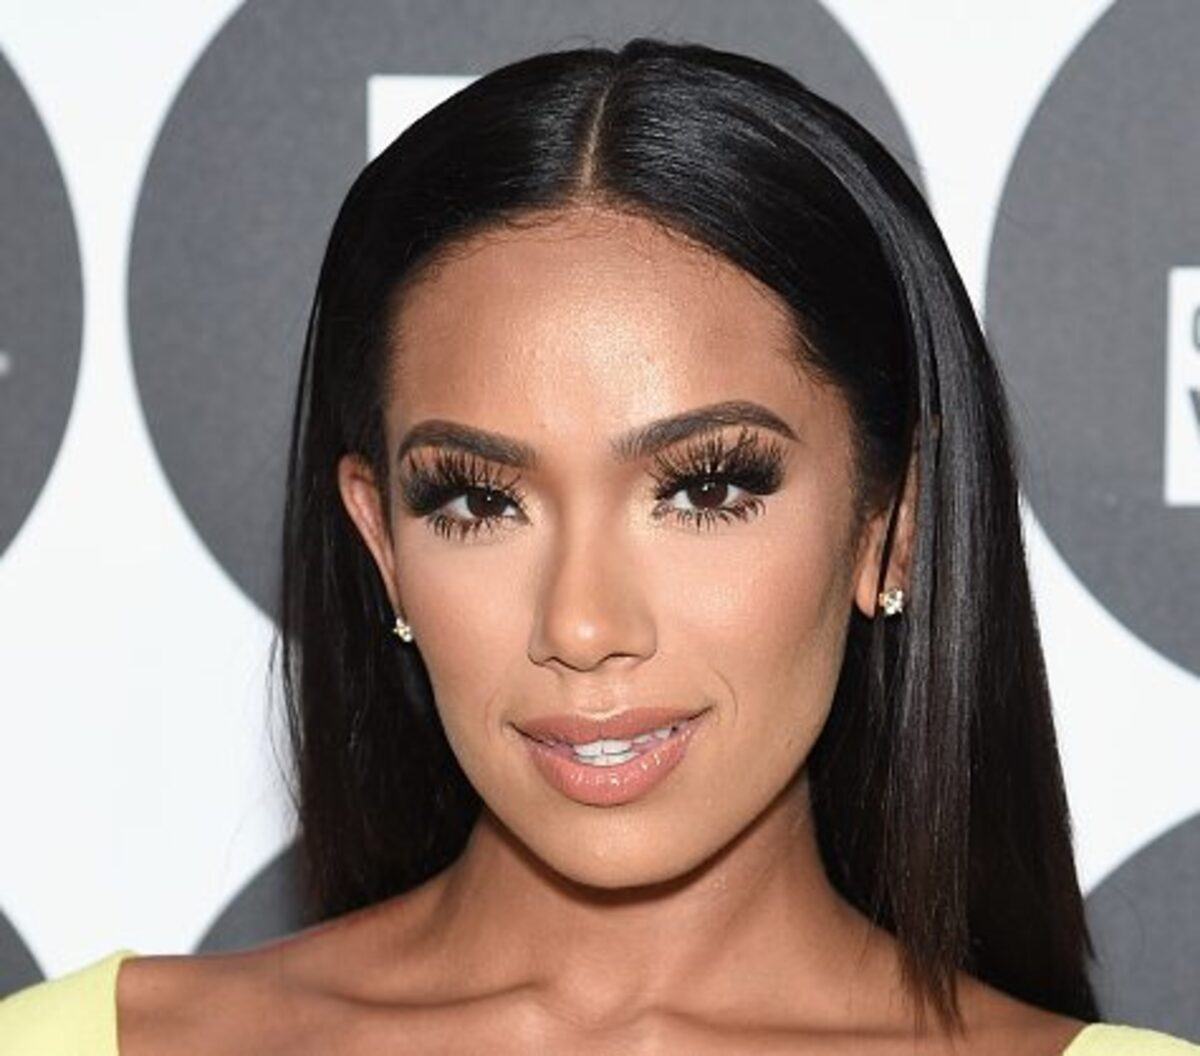 Erica Mena Asks For Healing And Guidance